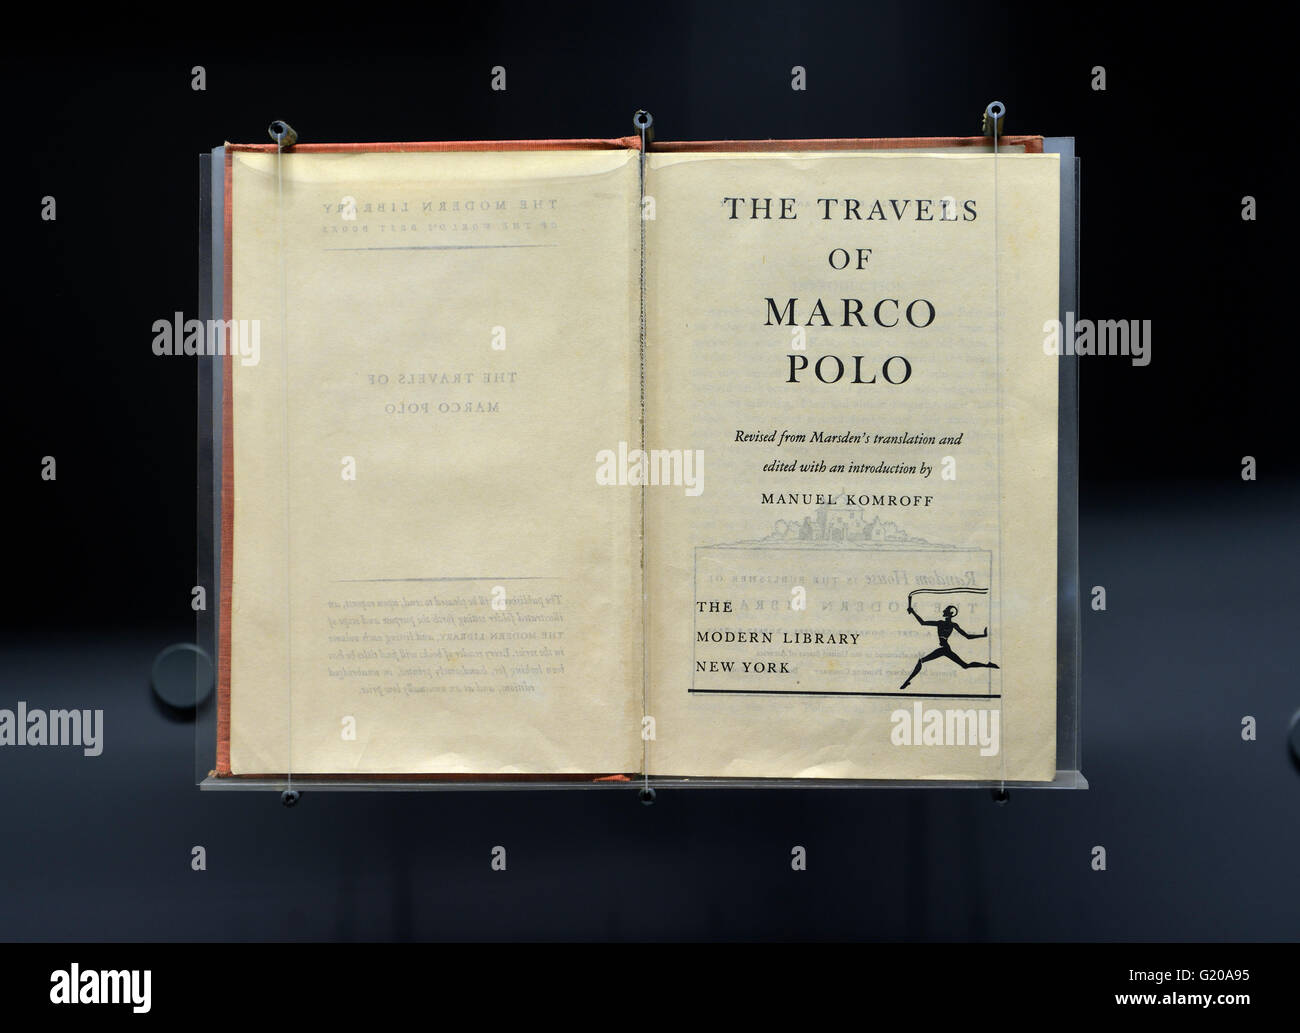 An old edition of The Travels of Marco Polo. Capital Museum, Beijing, China. - Stock Image